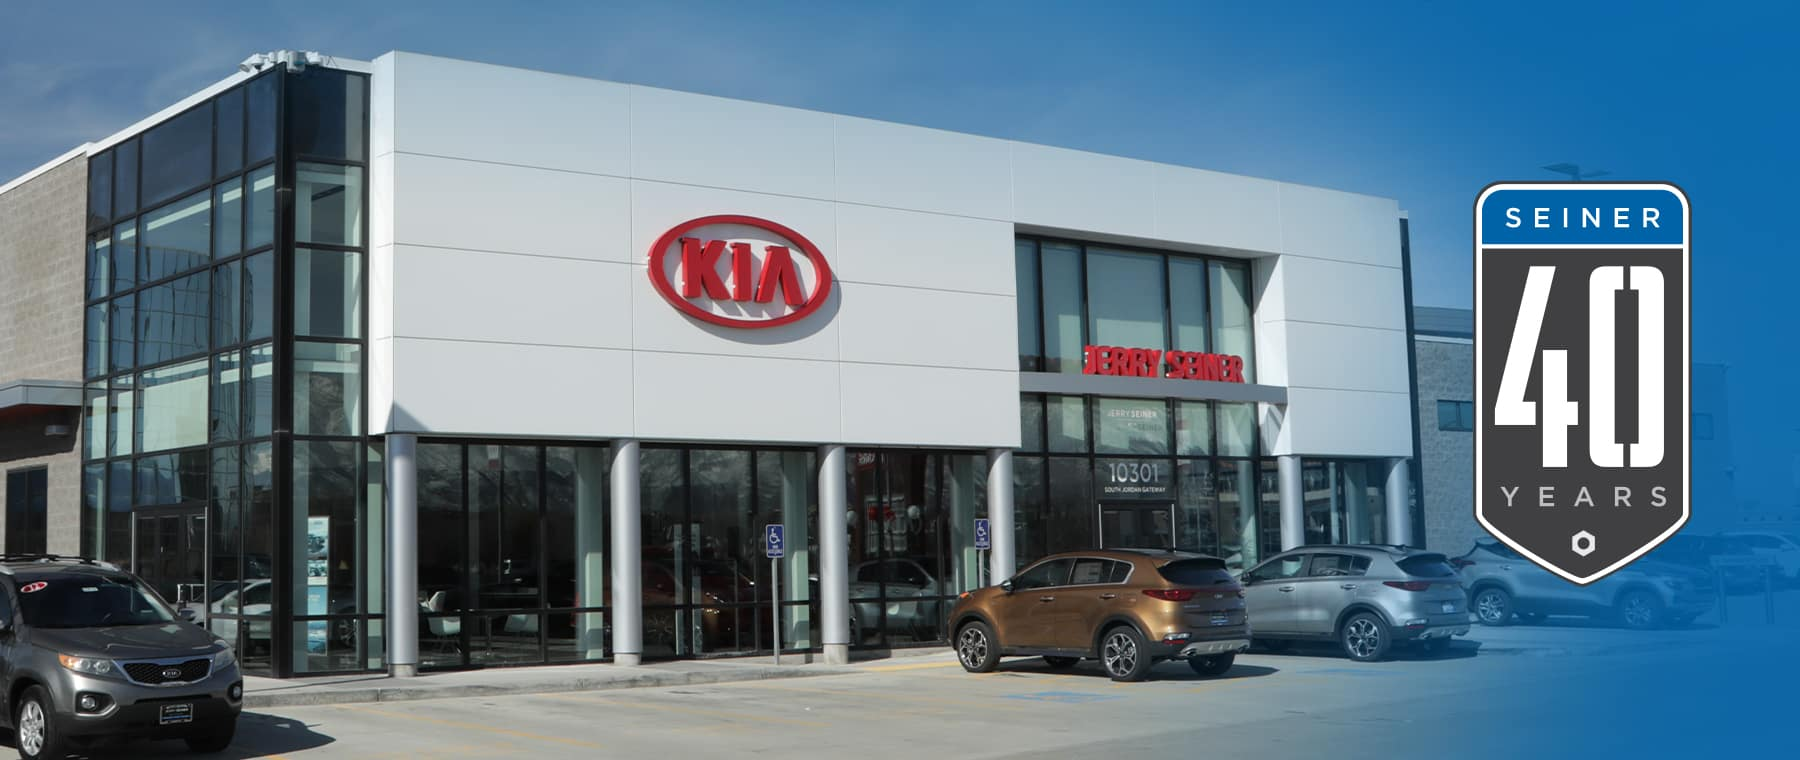 Jerry Seiner Kia South Jordan Dealership